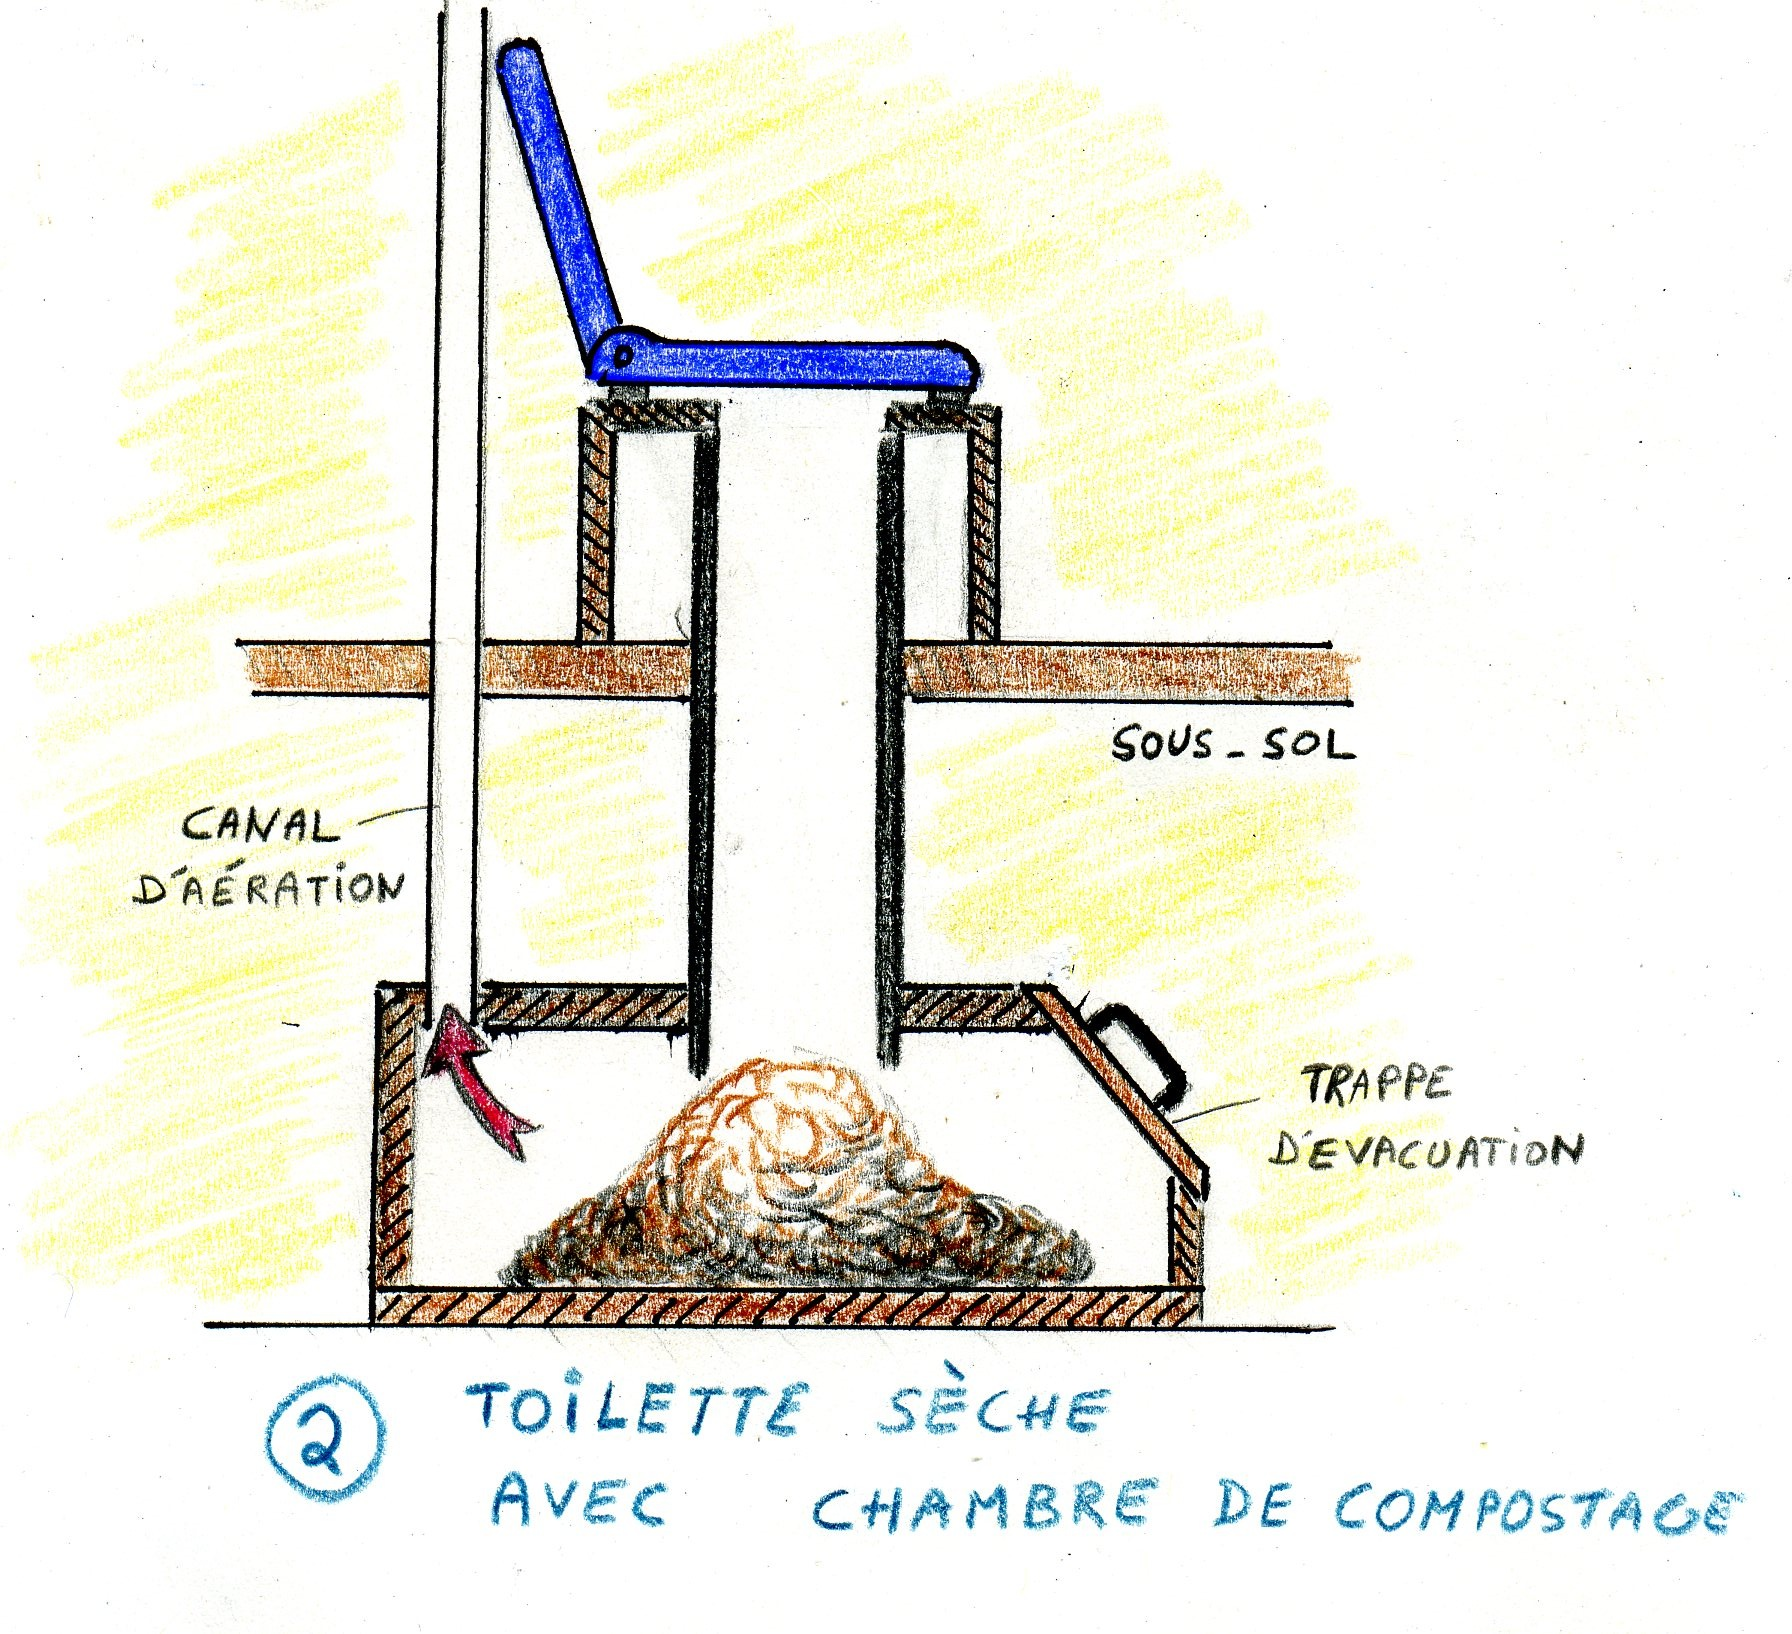 Toilettes compost - Plan de toilettes seches ...